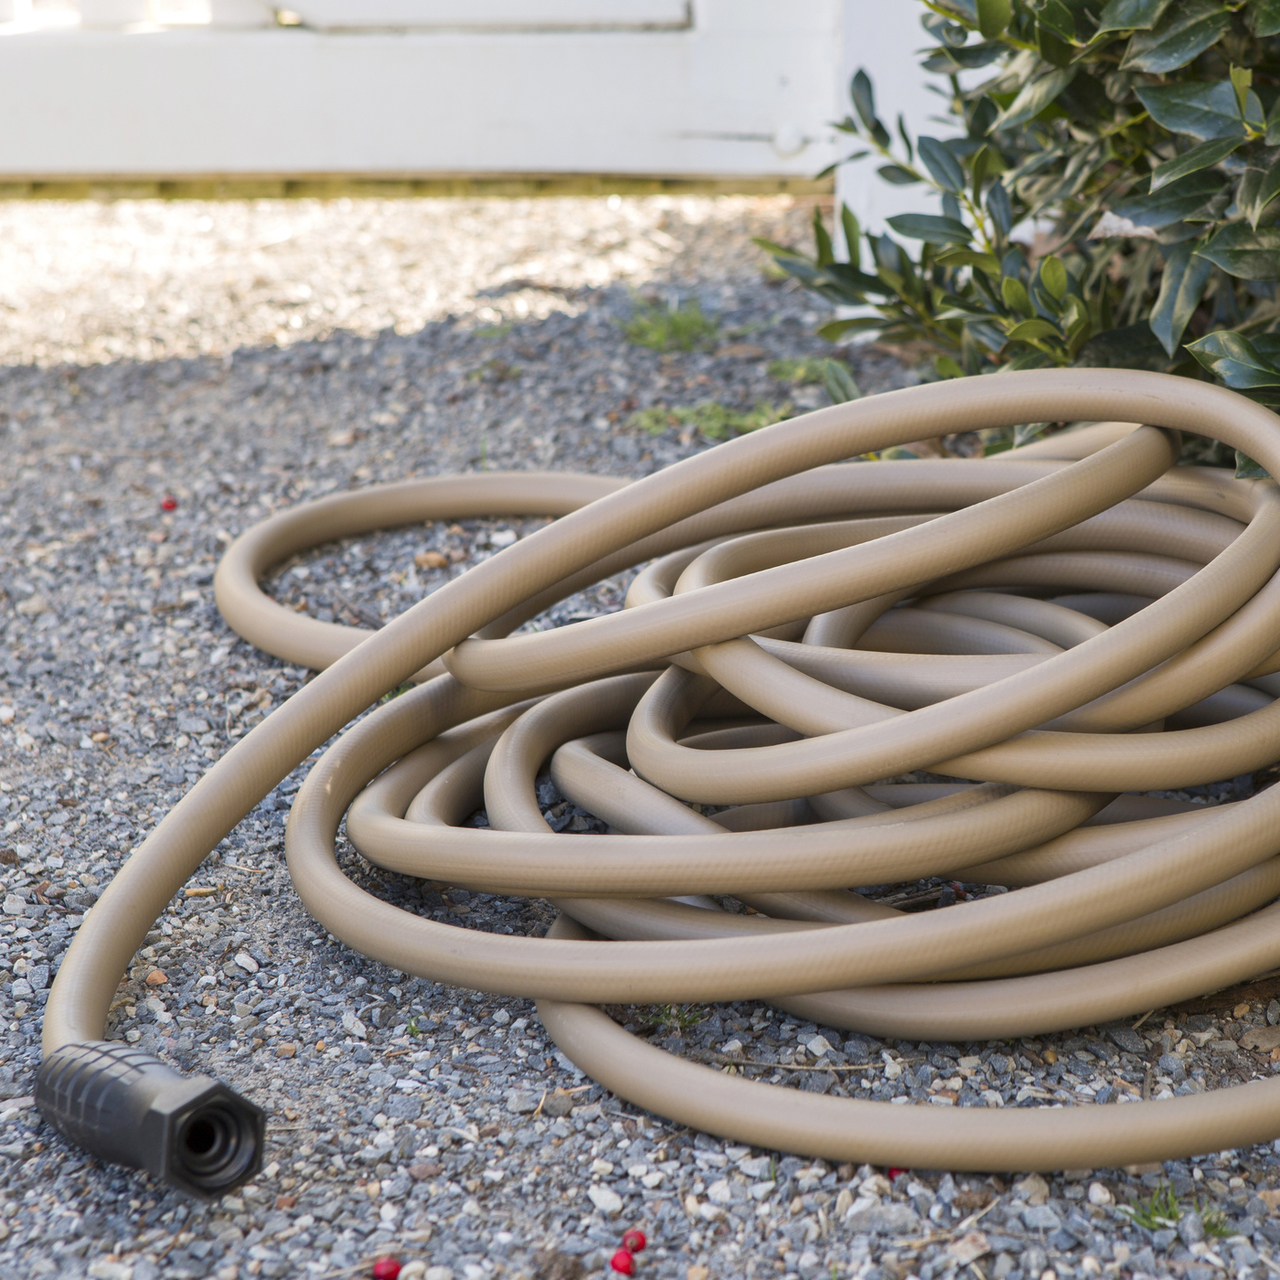 A Garden Hose for Arthritis Sufferers